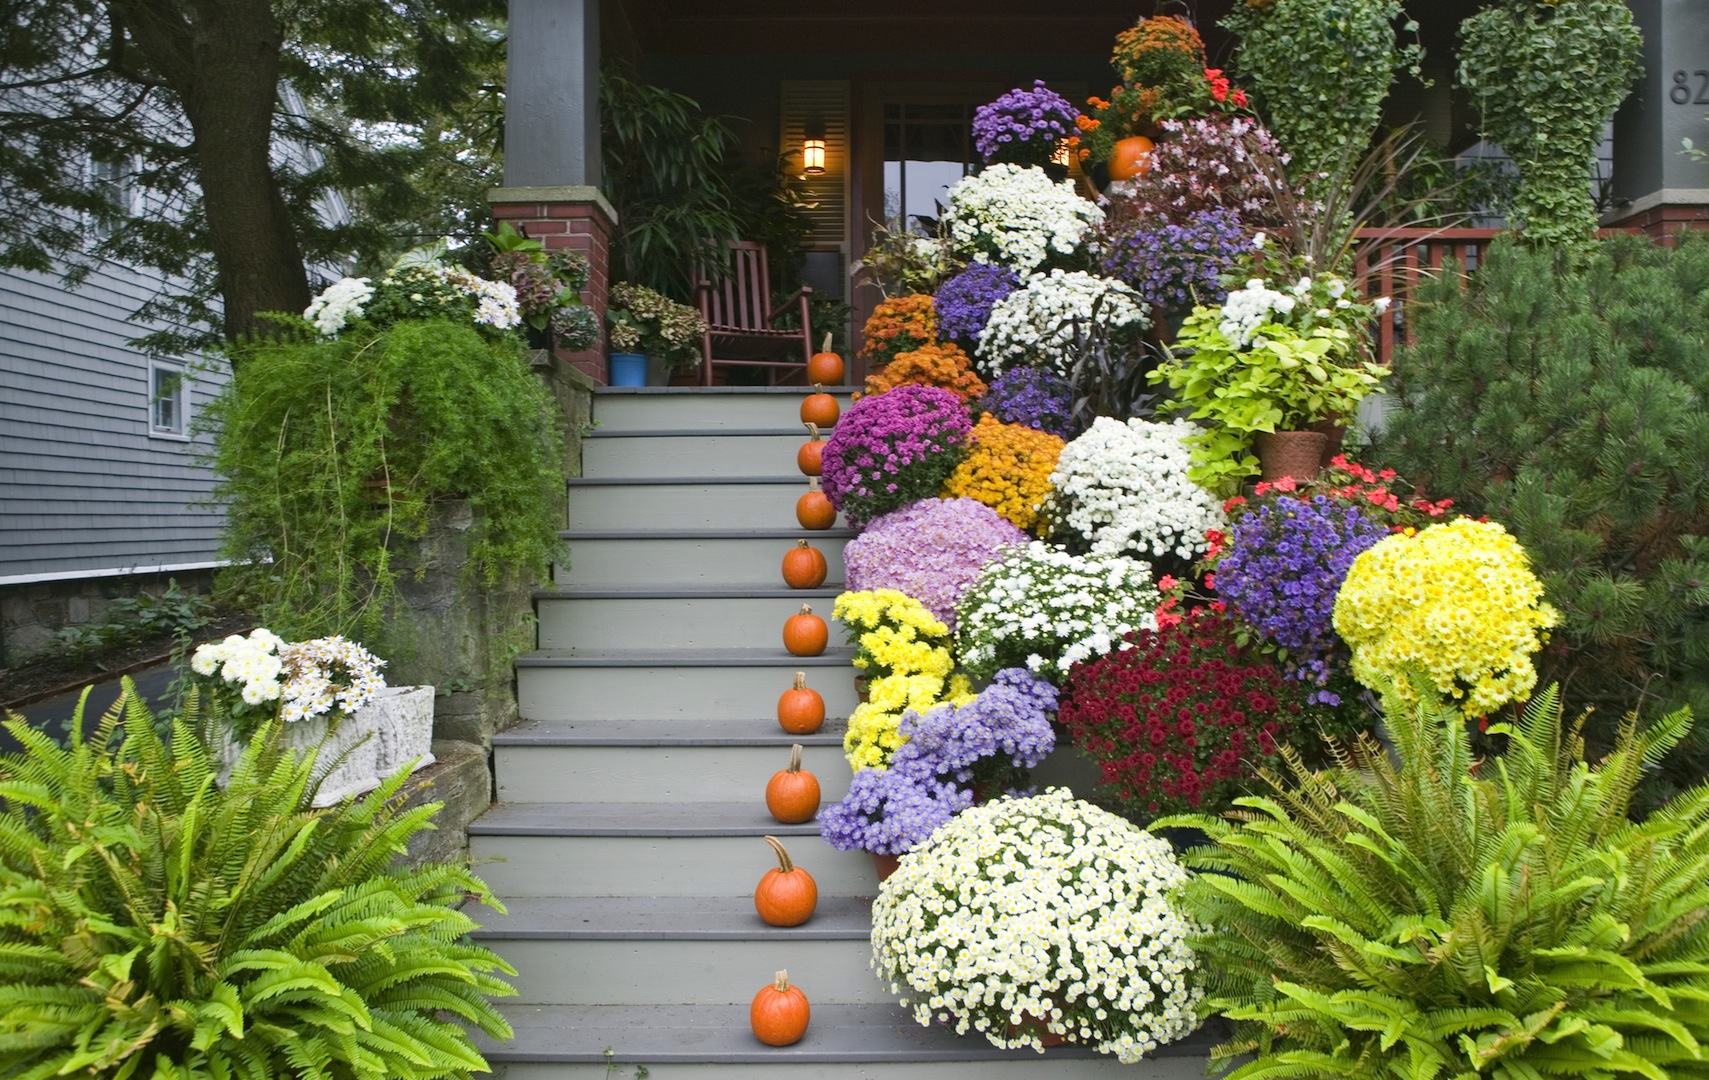 Outdoor-Stairs-Decoration-with-Flowers-Pot-11